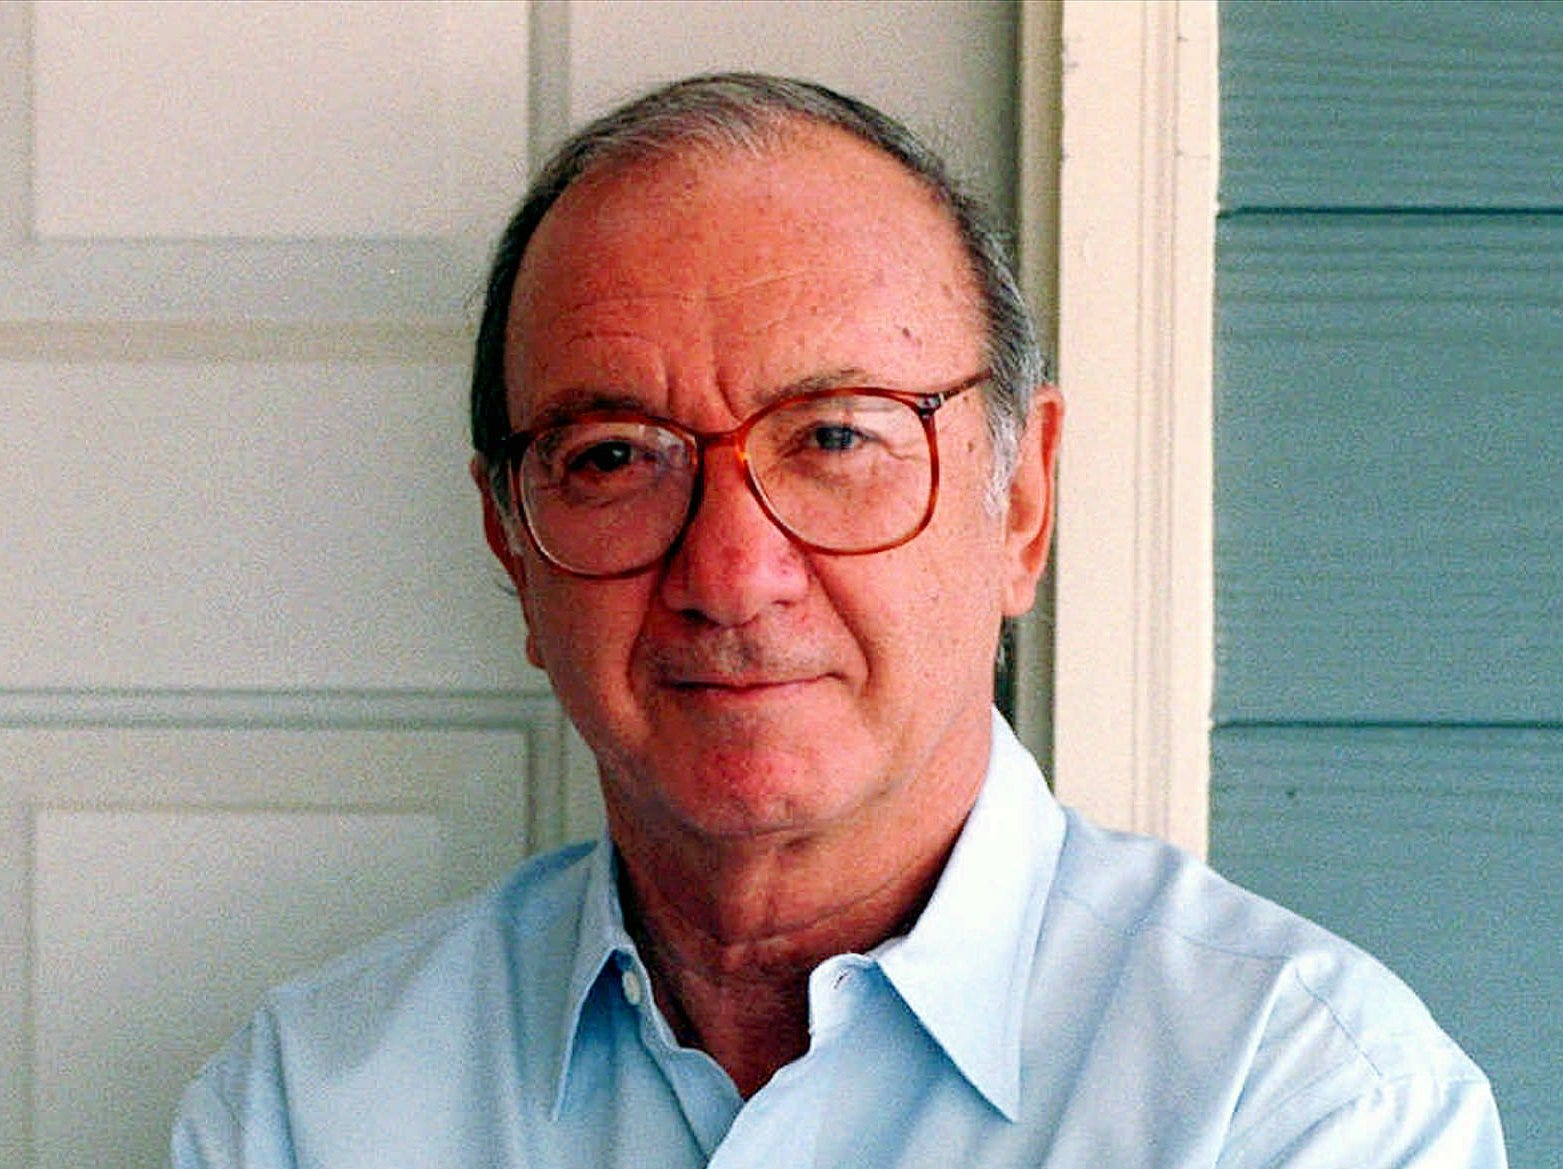 FILE--Playwright Neil Simon, shown in this April 1997 file photo, says all the experience writing TV, movie and Broadway hits doesn't make his work any easier.  ``Maybe the first draft you think is easier,'' he said recently. ``But after you're up to the eighth draft, you think, `I've got to plug up all these holes.'' Simon has a new play, ``Proposals,'' which premiered in Los Angeles this week. (AP Photo/Monty Davis, File)